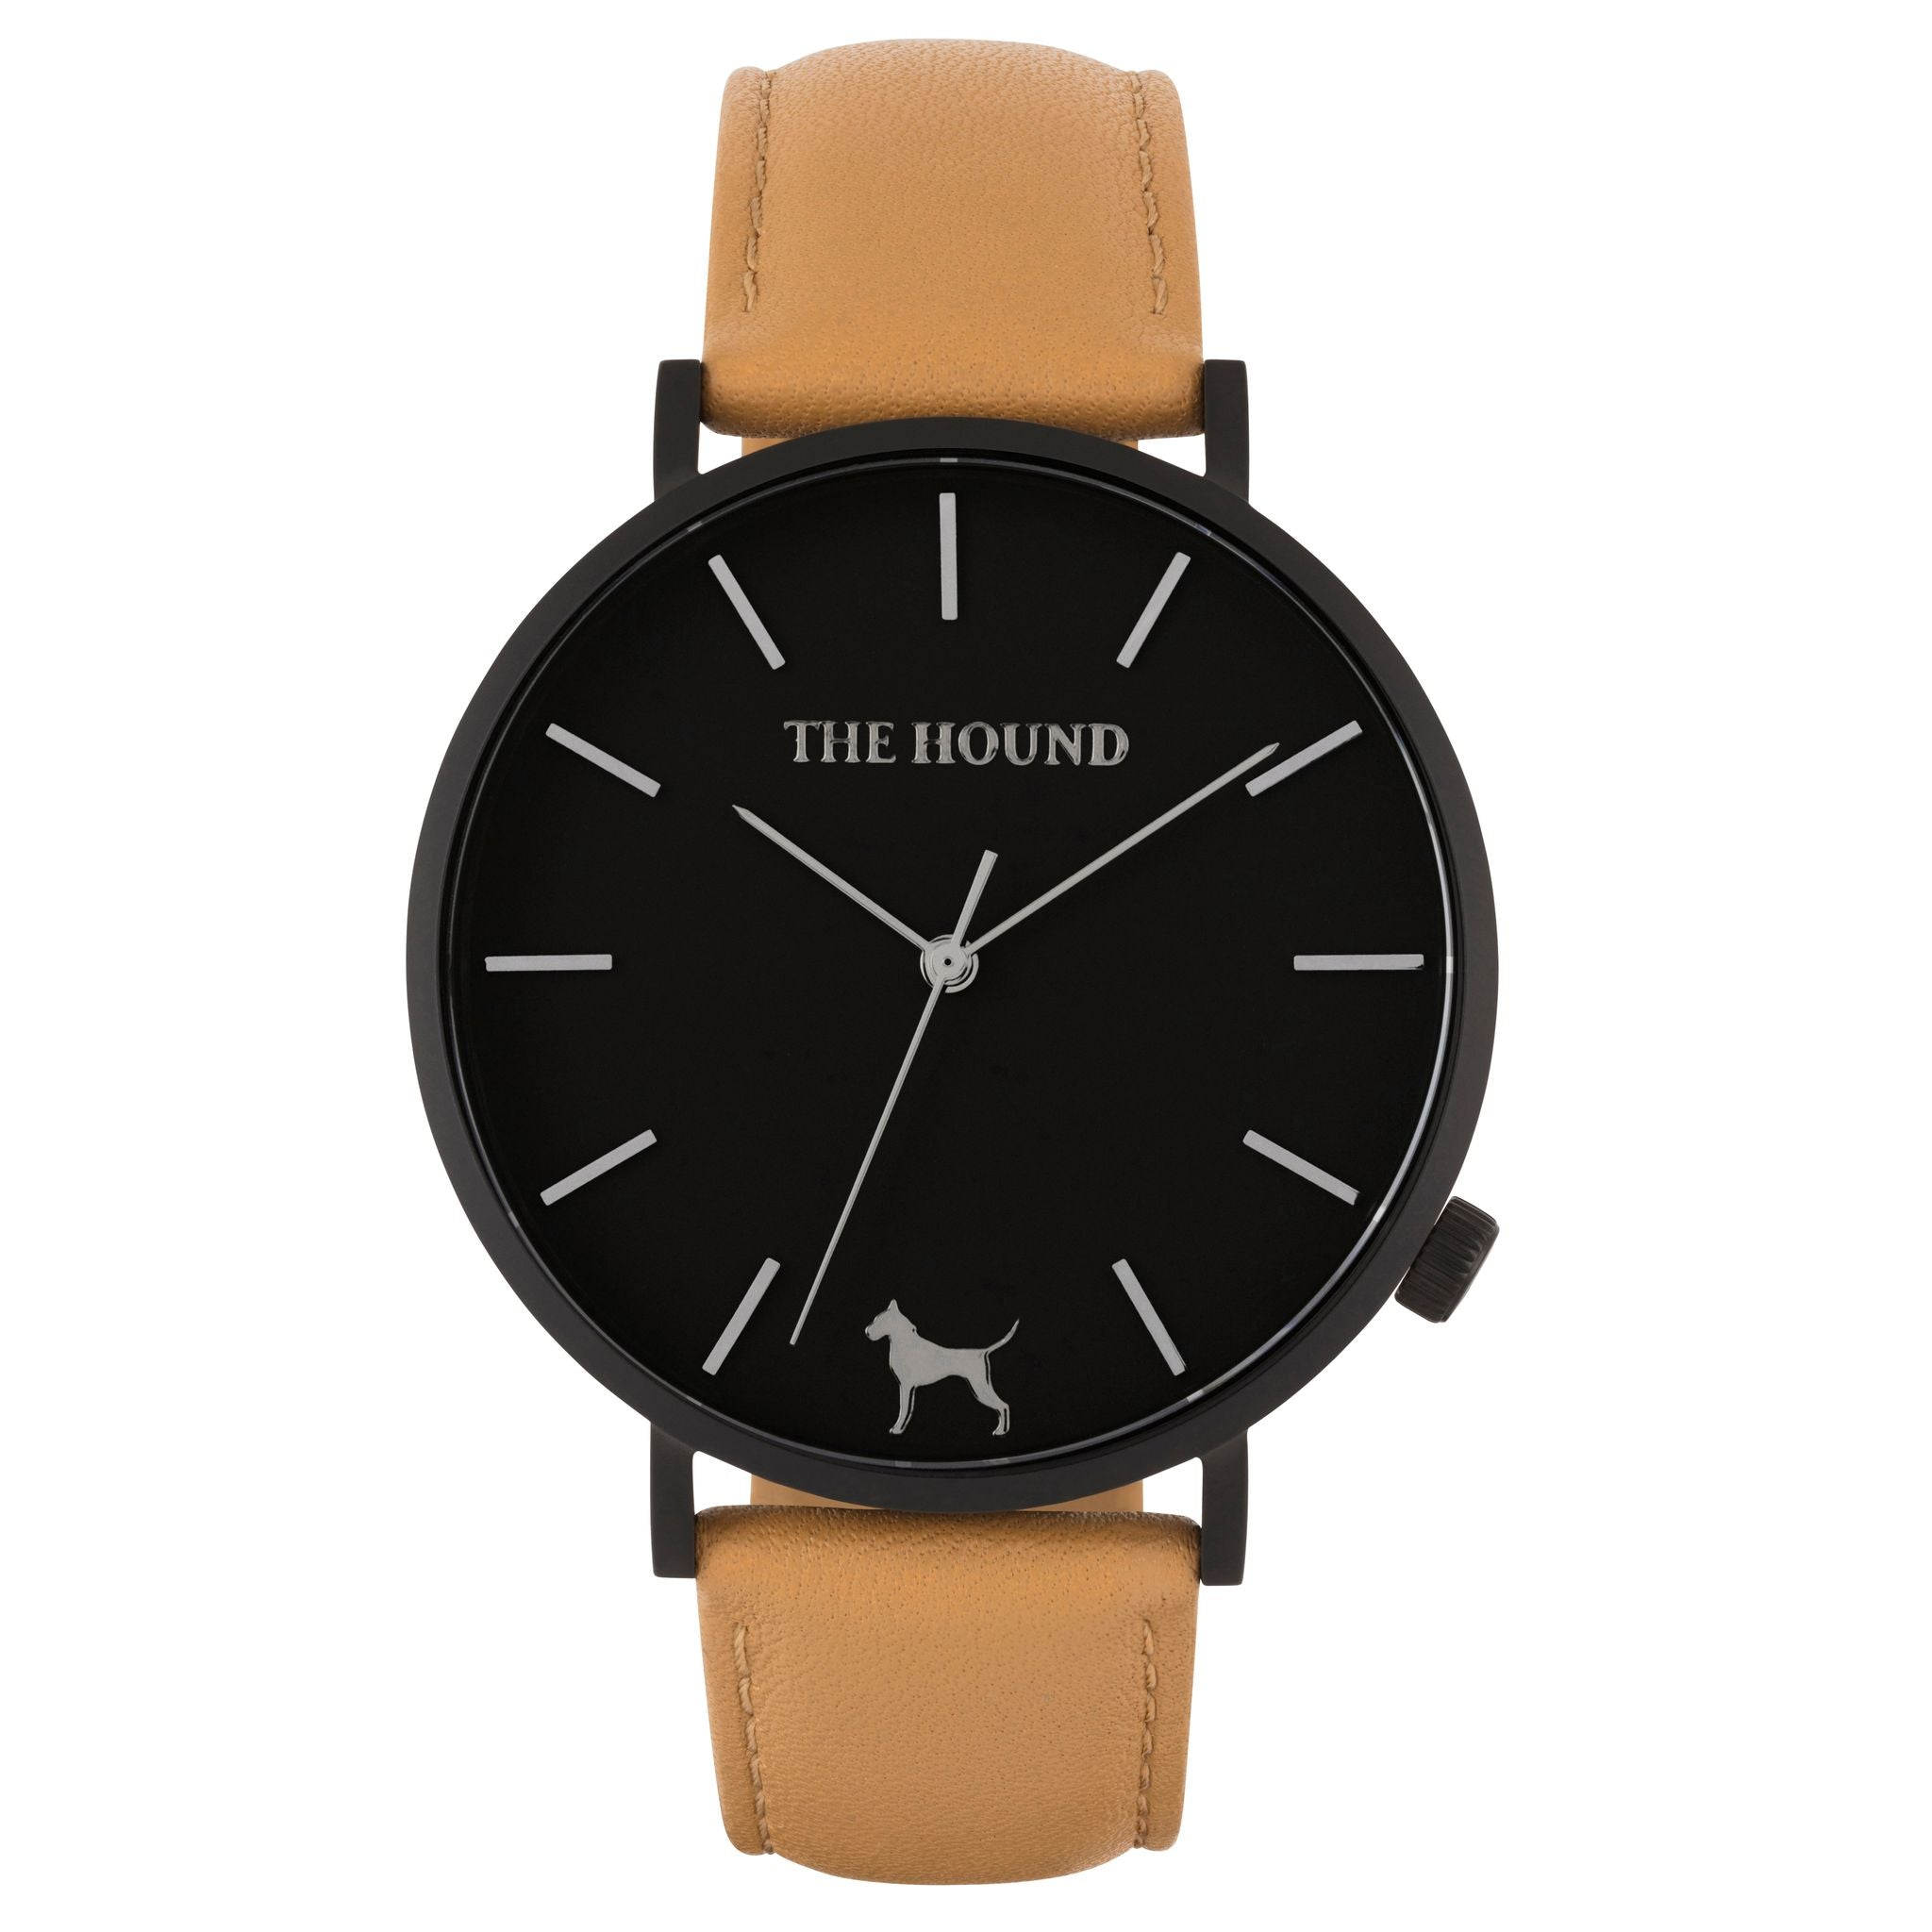 Extra Watch - Matte Black & Camel Leather